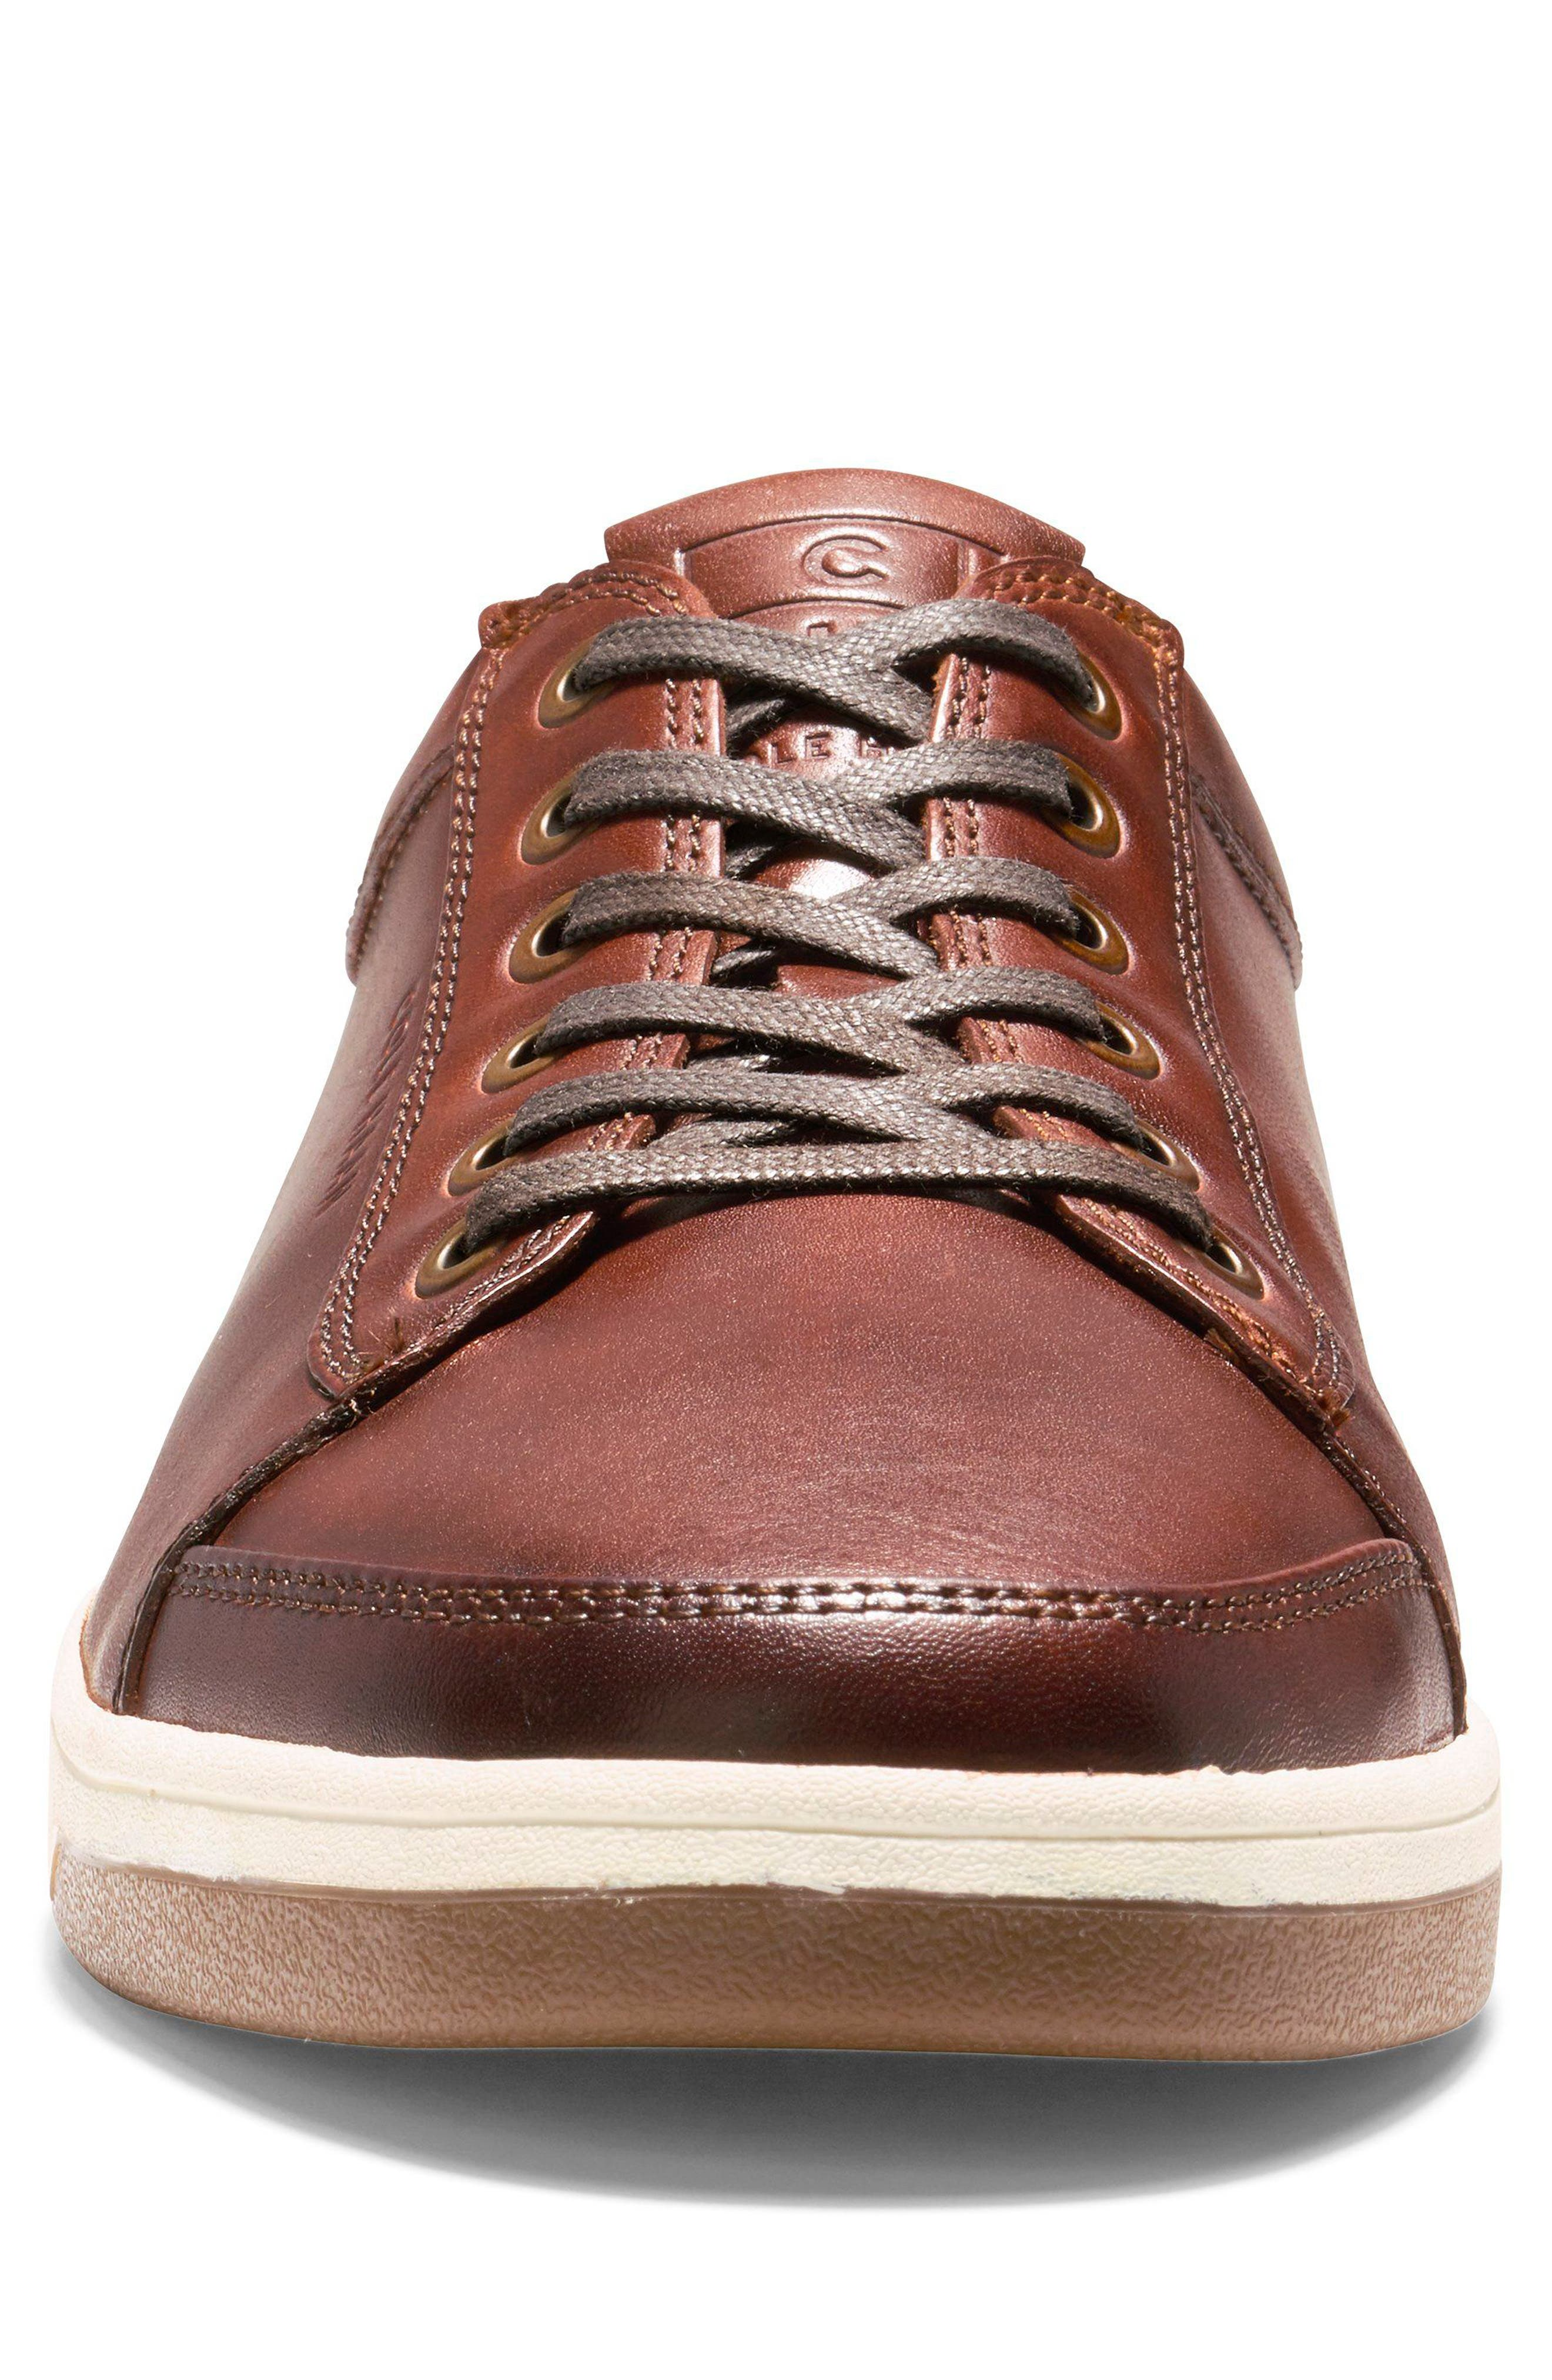 COLE HAAN, GrandPro Spectator Sneaker, Alternate thumbnail 4, color, WOODBURY LEATHER